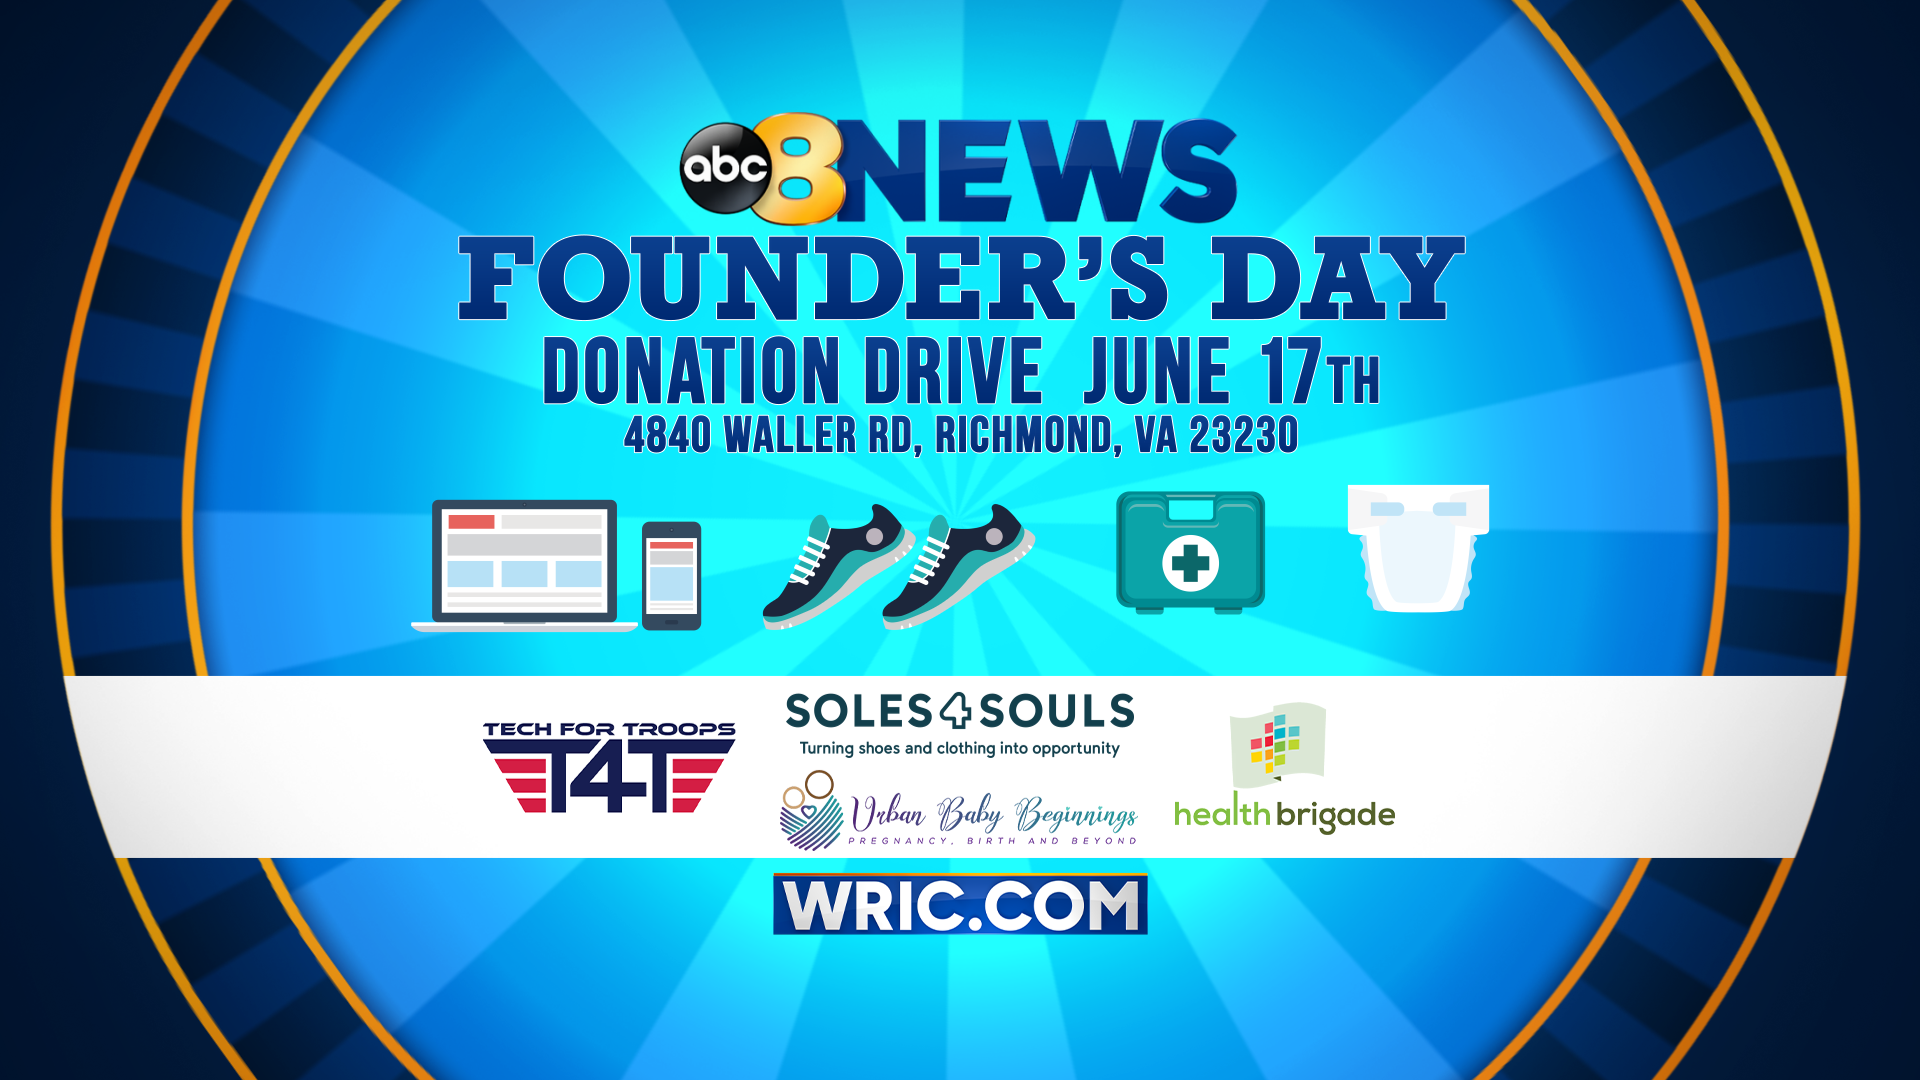 Founder's Day Donation Drive